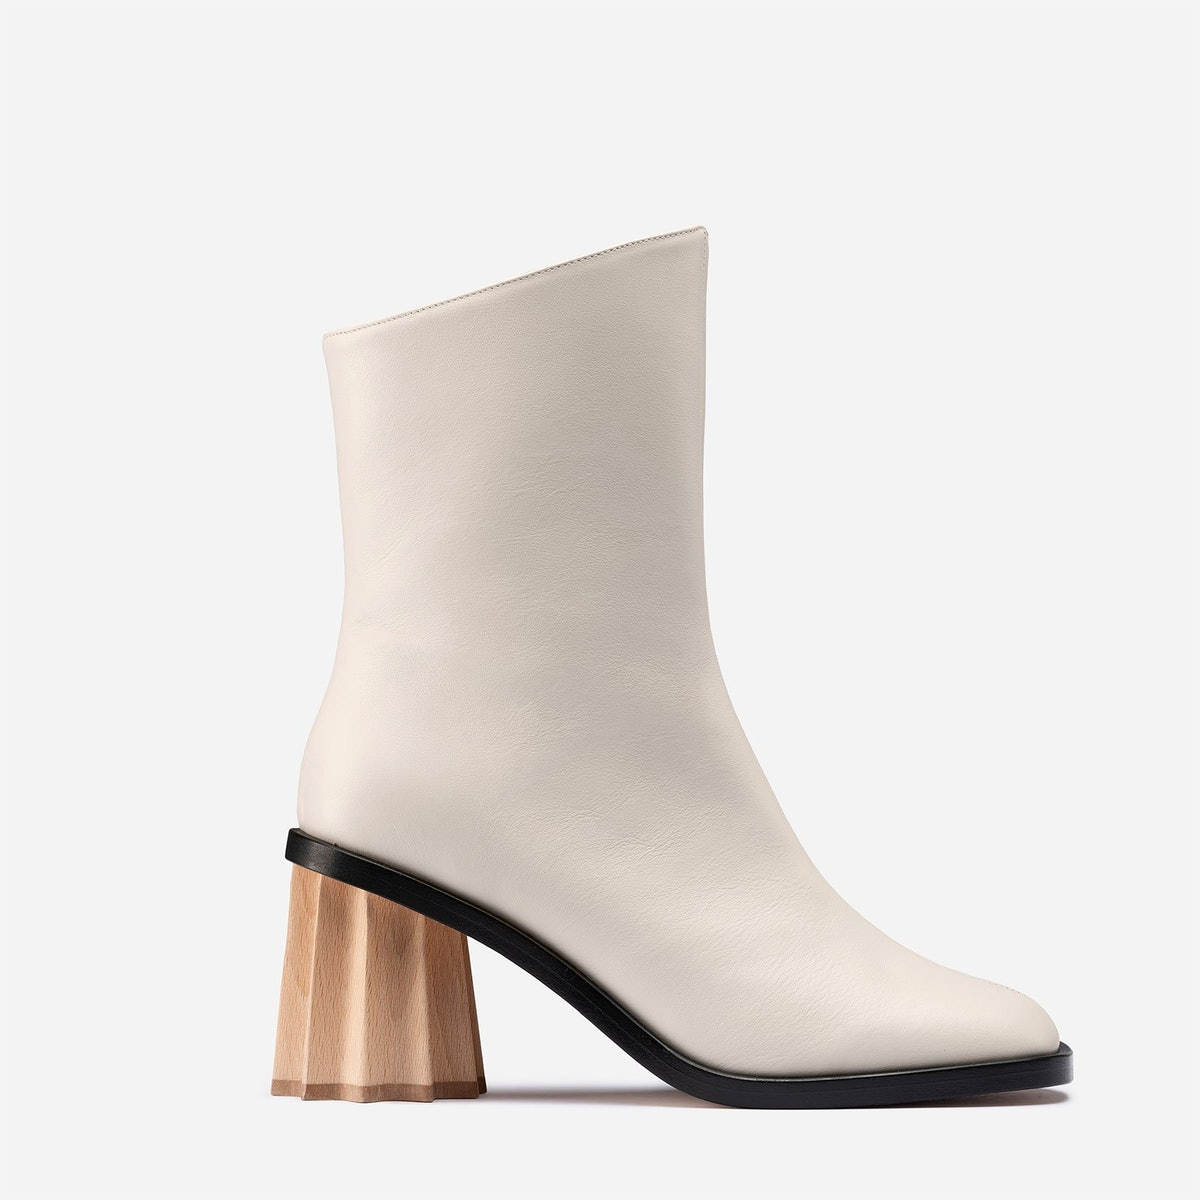 Pleated Heel Boot in Off White from mlouye.